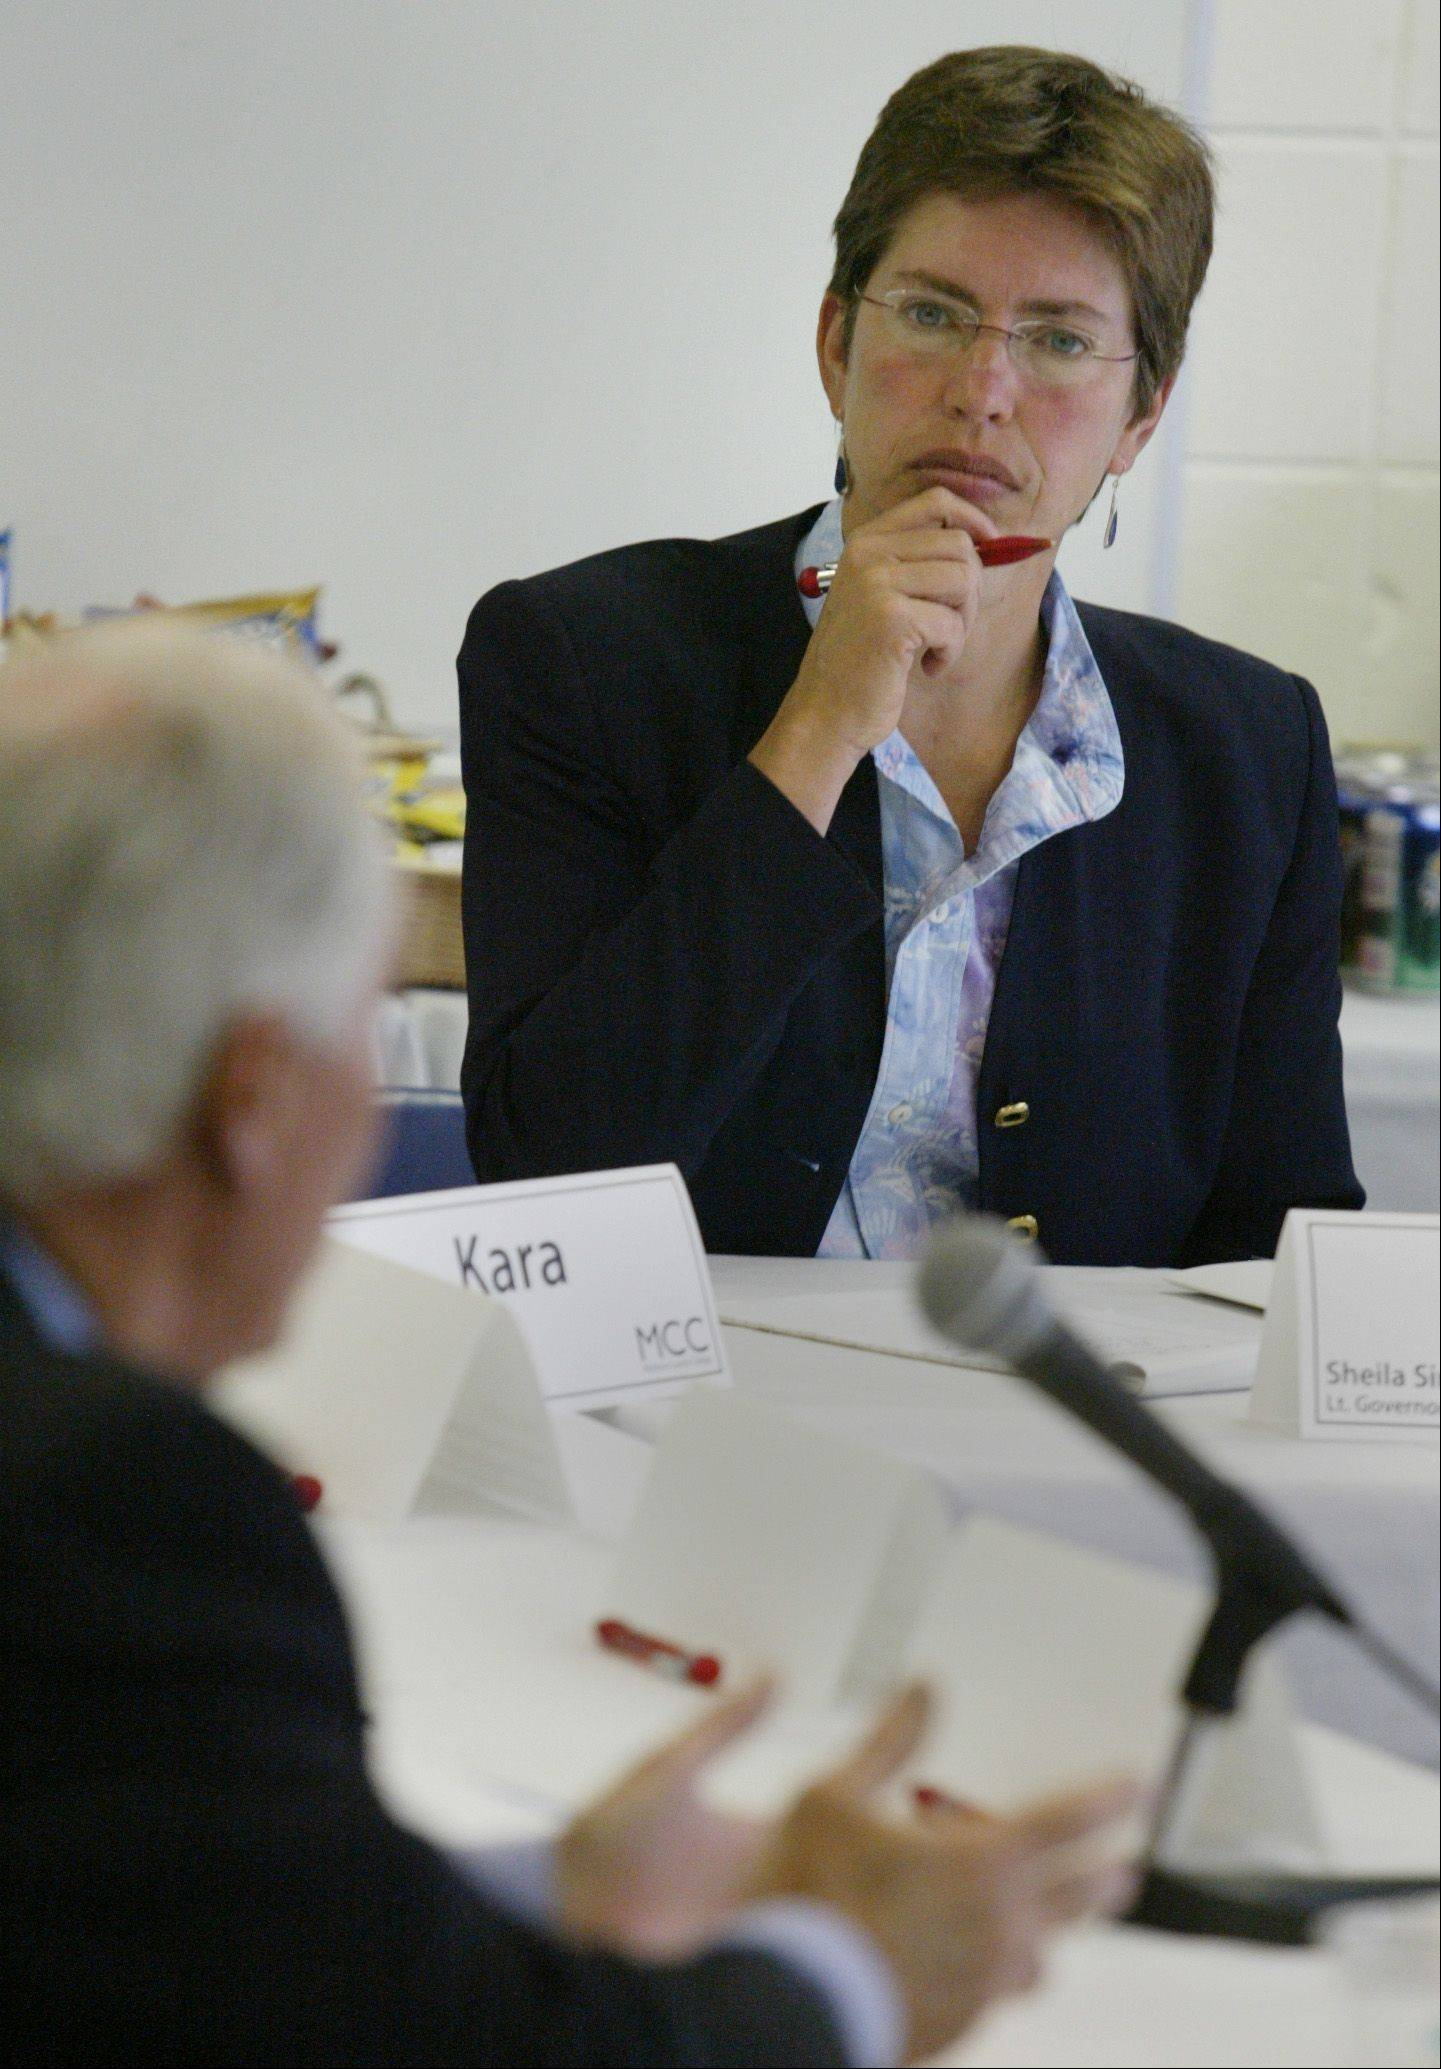 Lt. Gov. Sheila Simon listens to Tony Capalbo speak Monday during a meeting with faculty, staff and students.